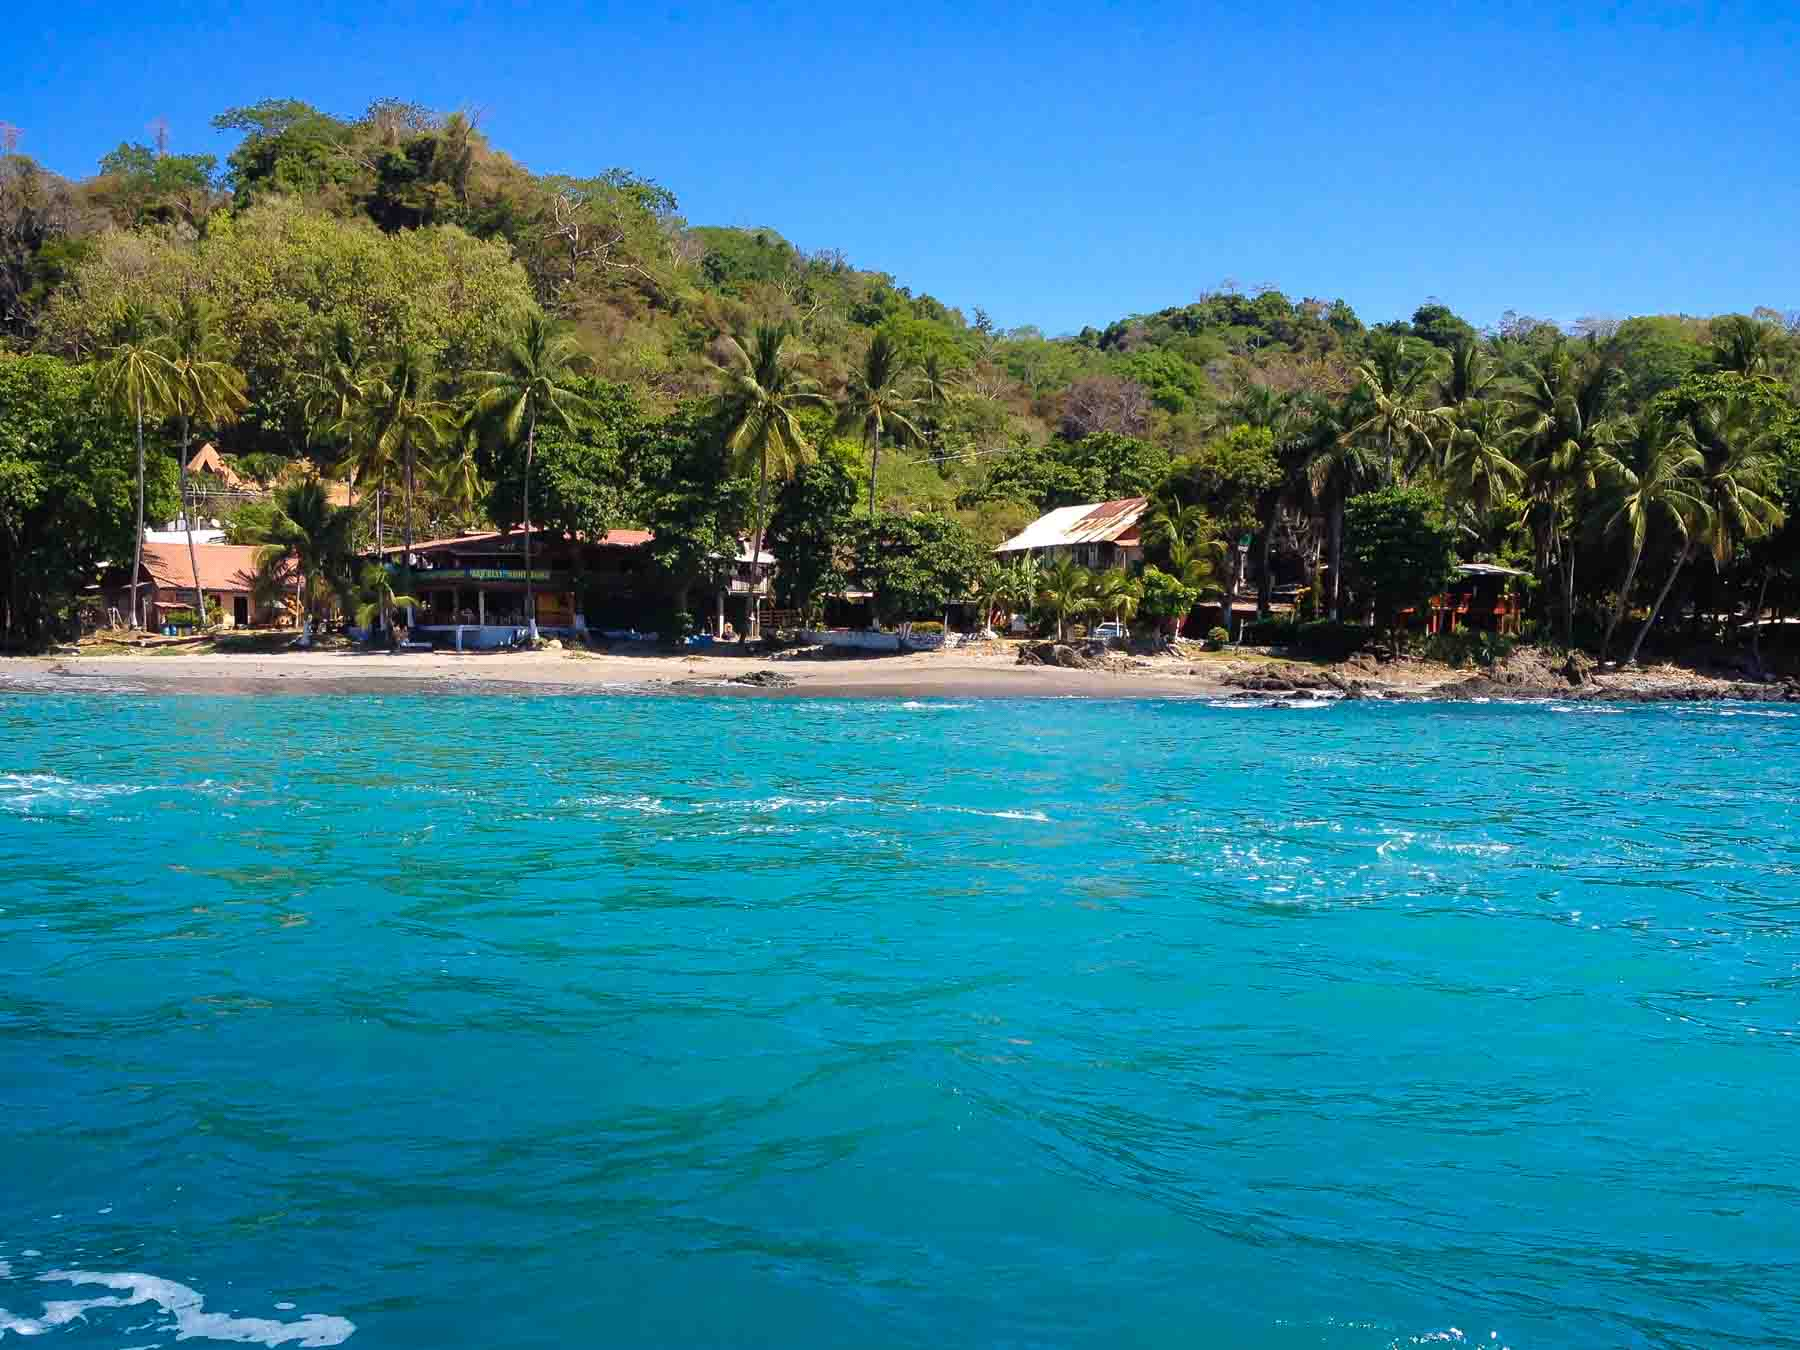 Small coastal town of montezuma costa rica seen from the water